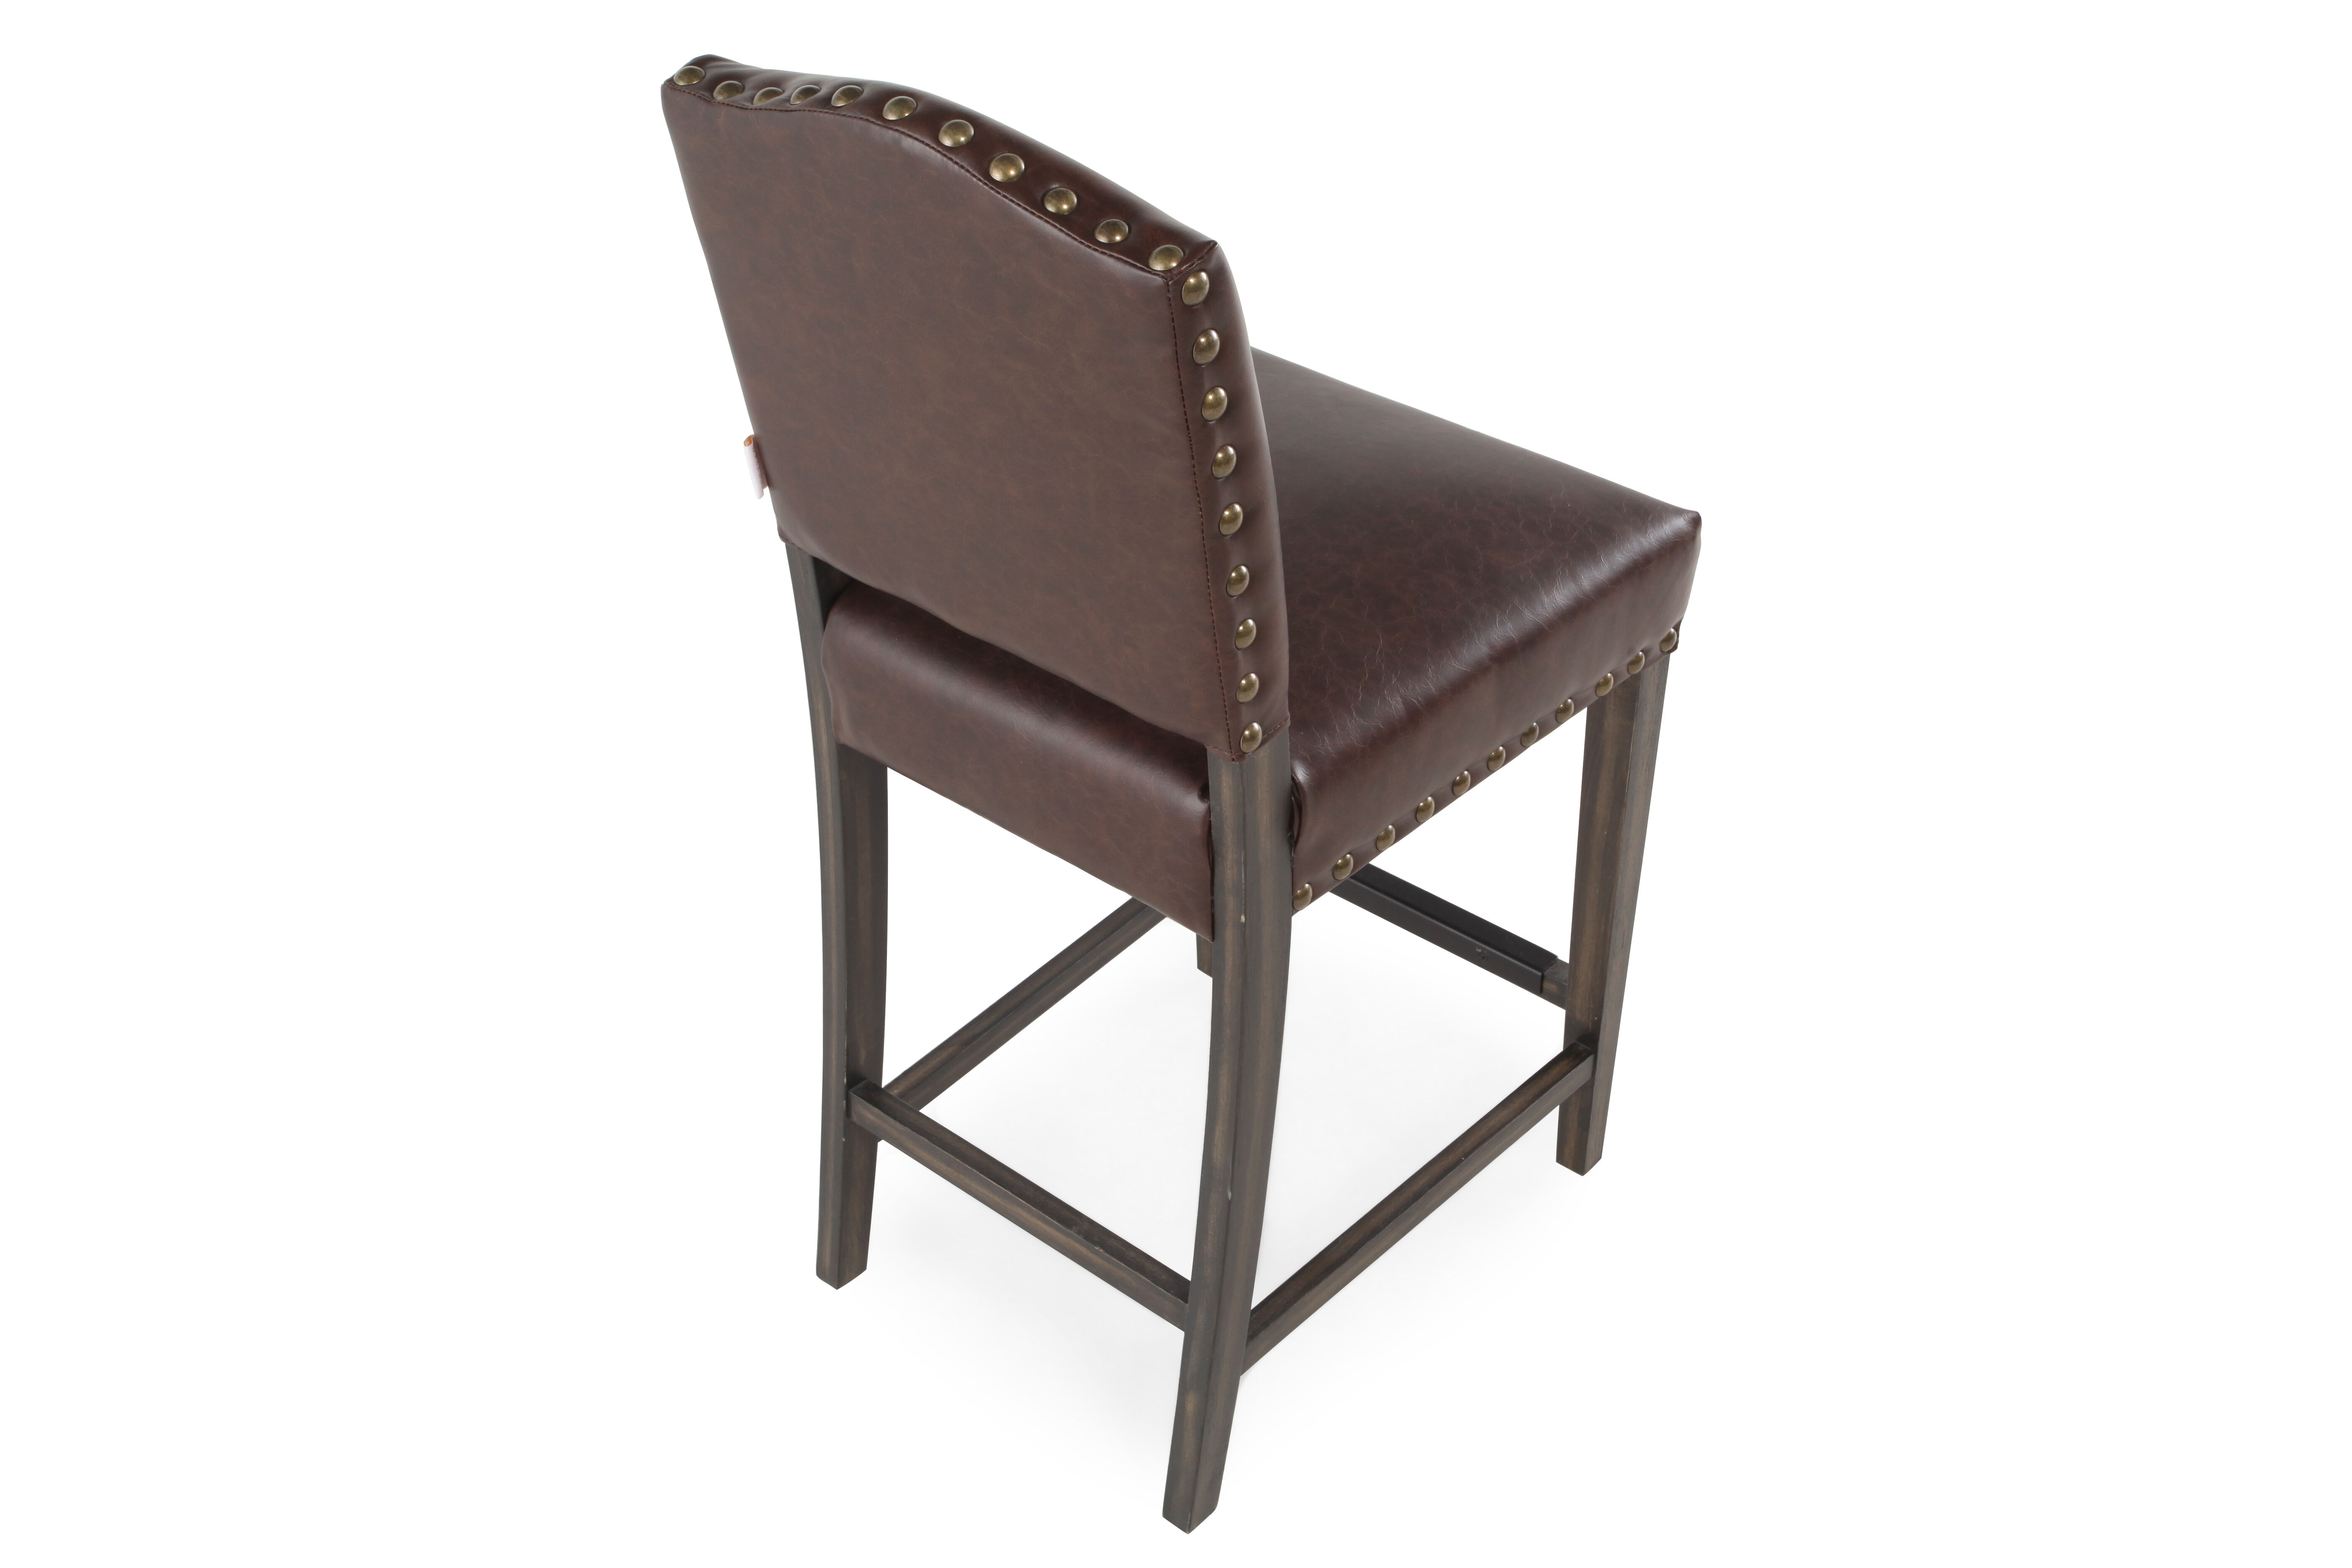 Boulevard Brown Leather Counter Stool  sc 1 st  Mathis Brothers & Boulevard Brown Leather Counter Stool | Mathis Brothers Furniture islam-shia.org